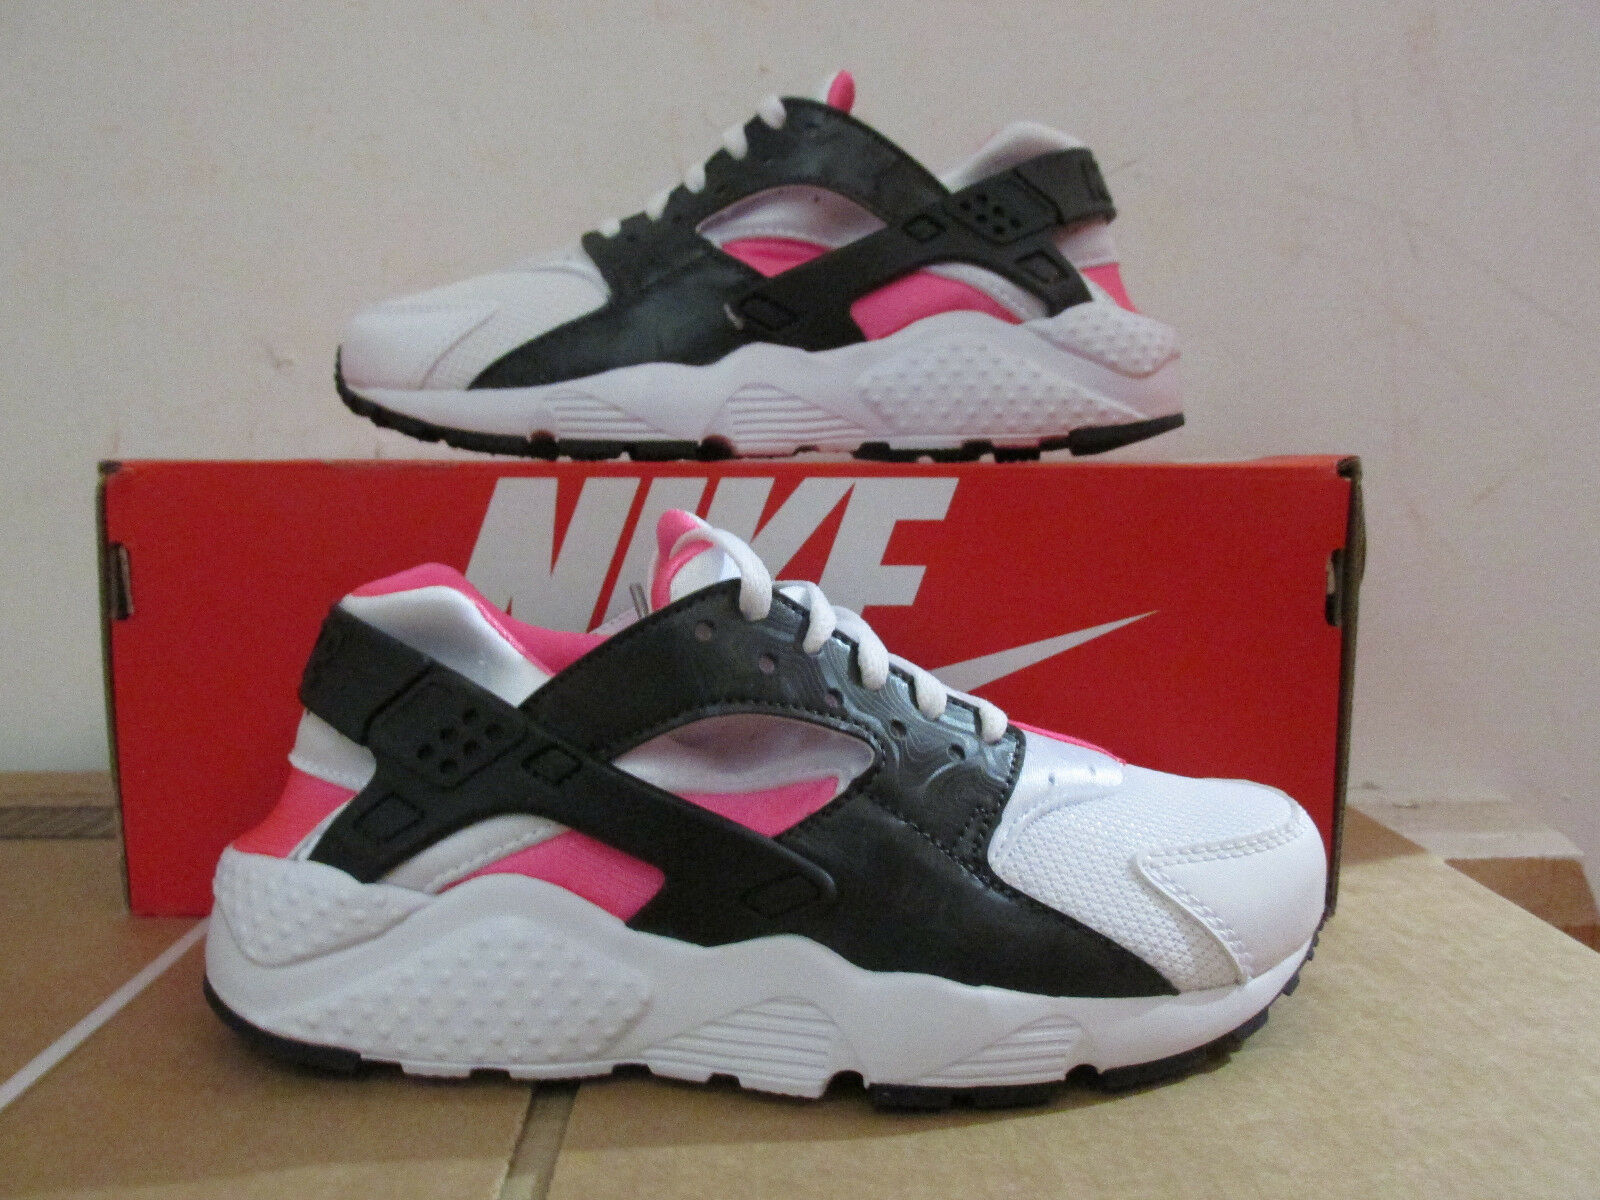 Nike Huarache Run Sneakers GS Trainers 654280 104 Sneakers Run Schuhes CLEARANCE 2a97c0